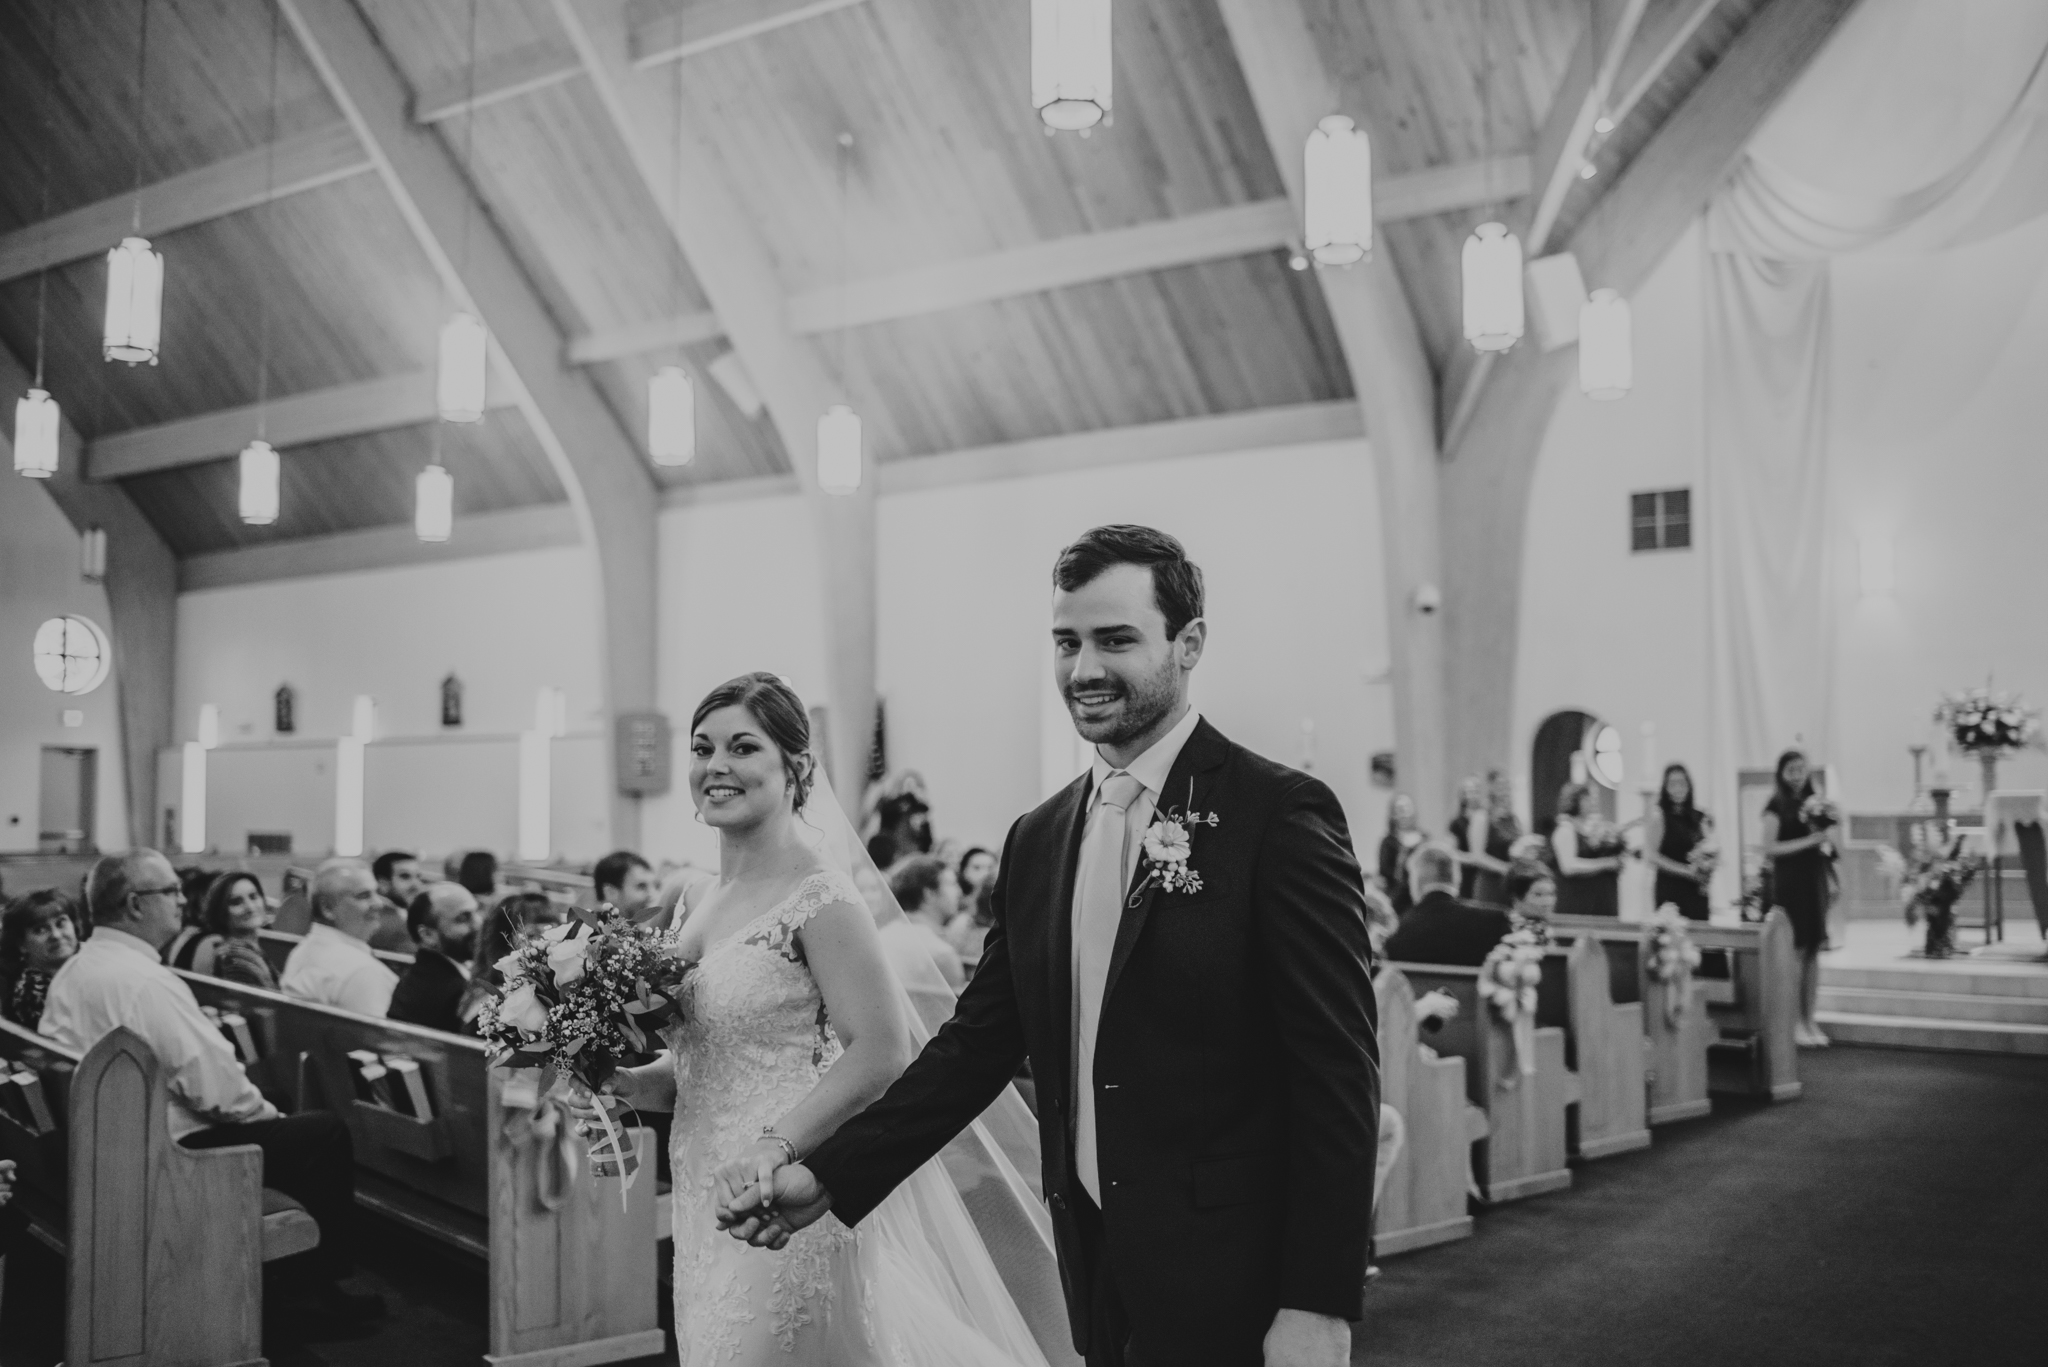 Raleigh-wedding-photographer-bride-and-groom-walk-down-aisle-rose-trail-images.jpg